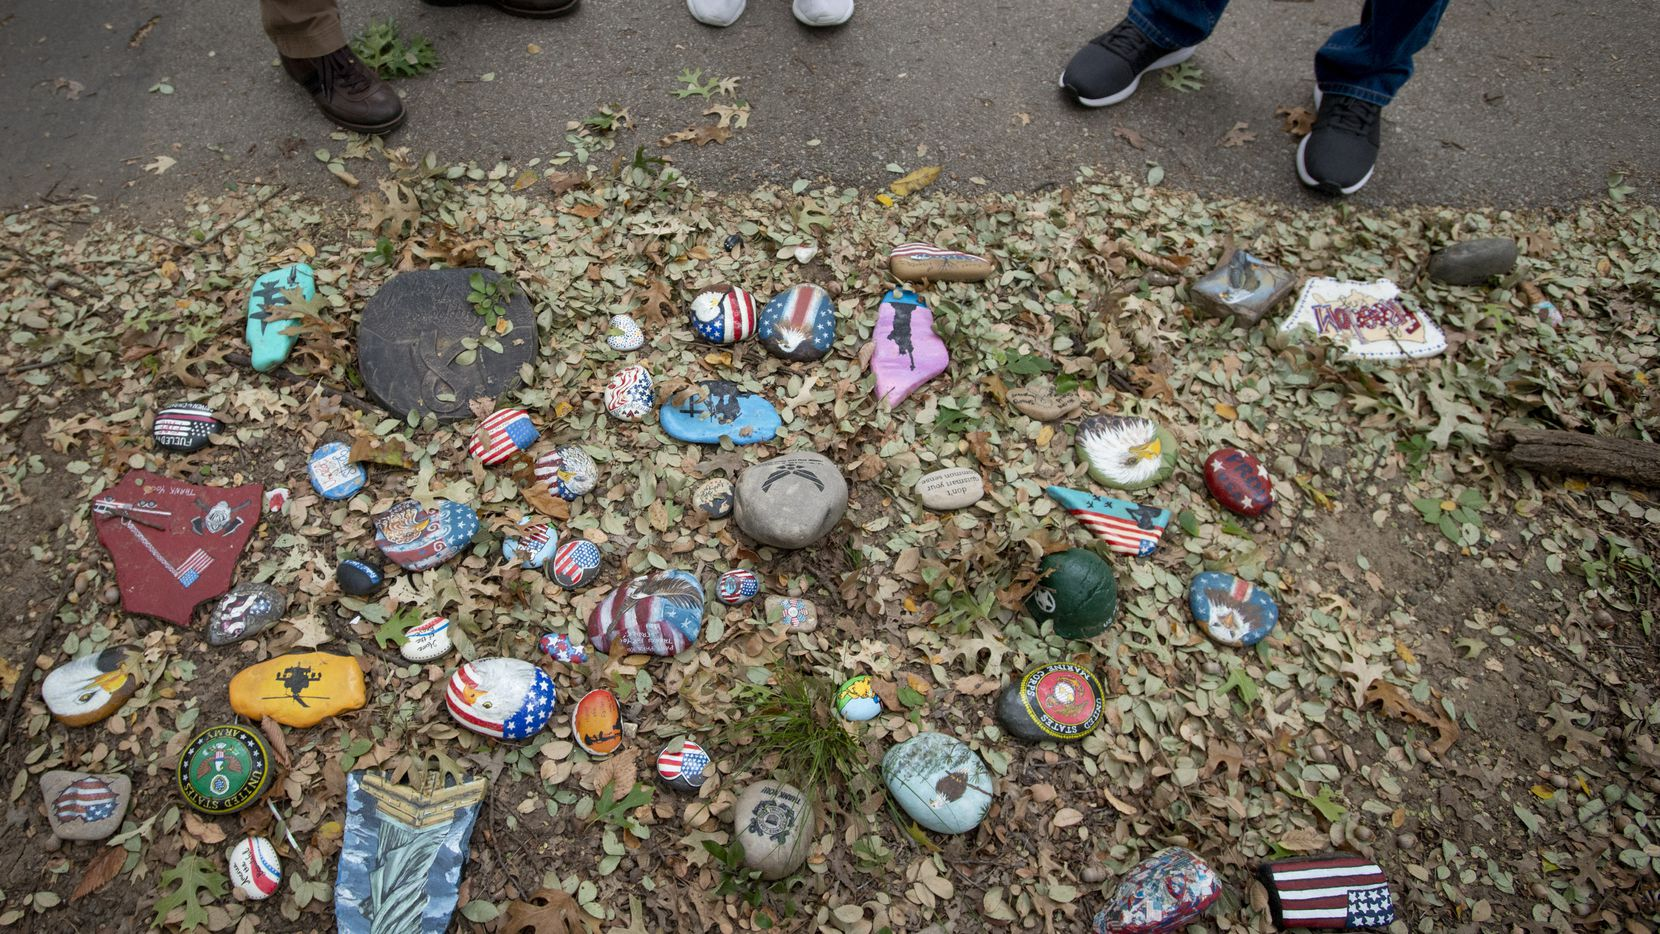 The trail began in March 2020 with 2,500 rocks. Now, there are almost 25,000. (Robert W. Hart/Special Contributor)